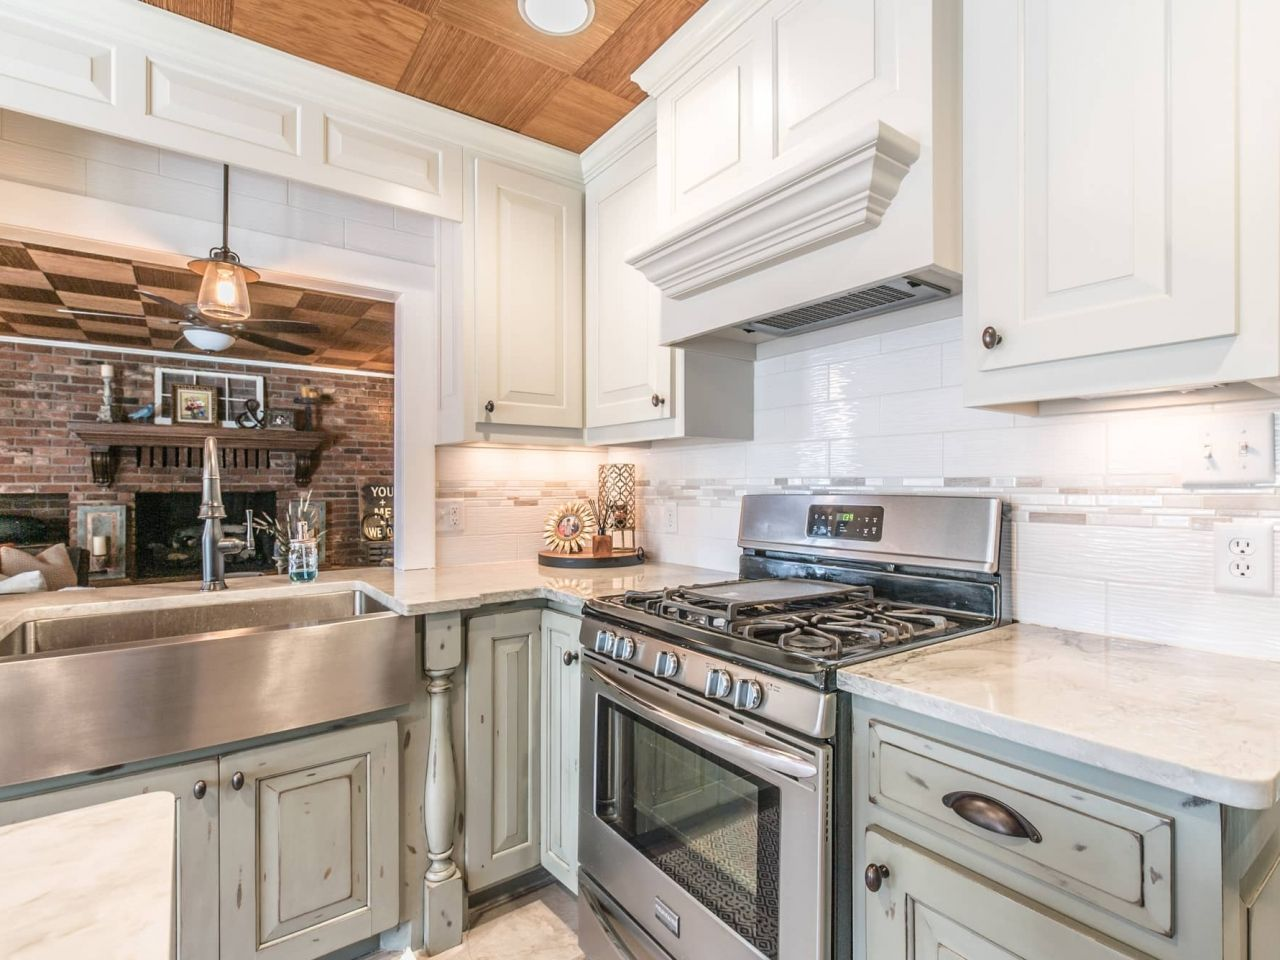 Project By East Coast Granite Marble In Columbia Sc This Stone Is A Sea Pearl Quartzite Visit U Kitchen Countertops White Modern Kitchen Countertops